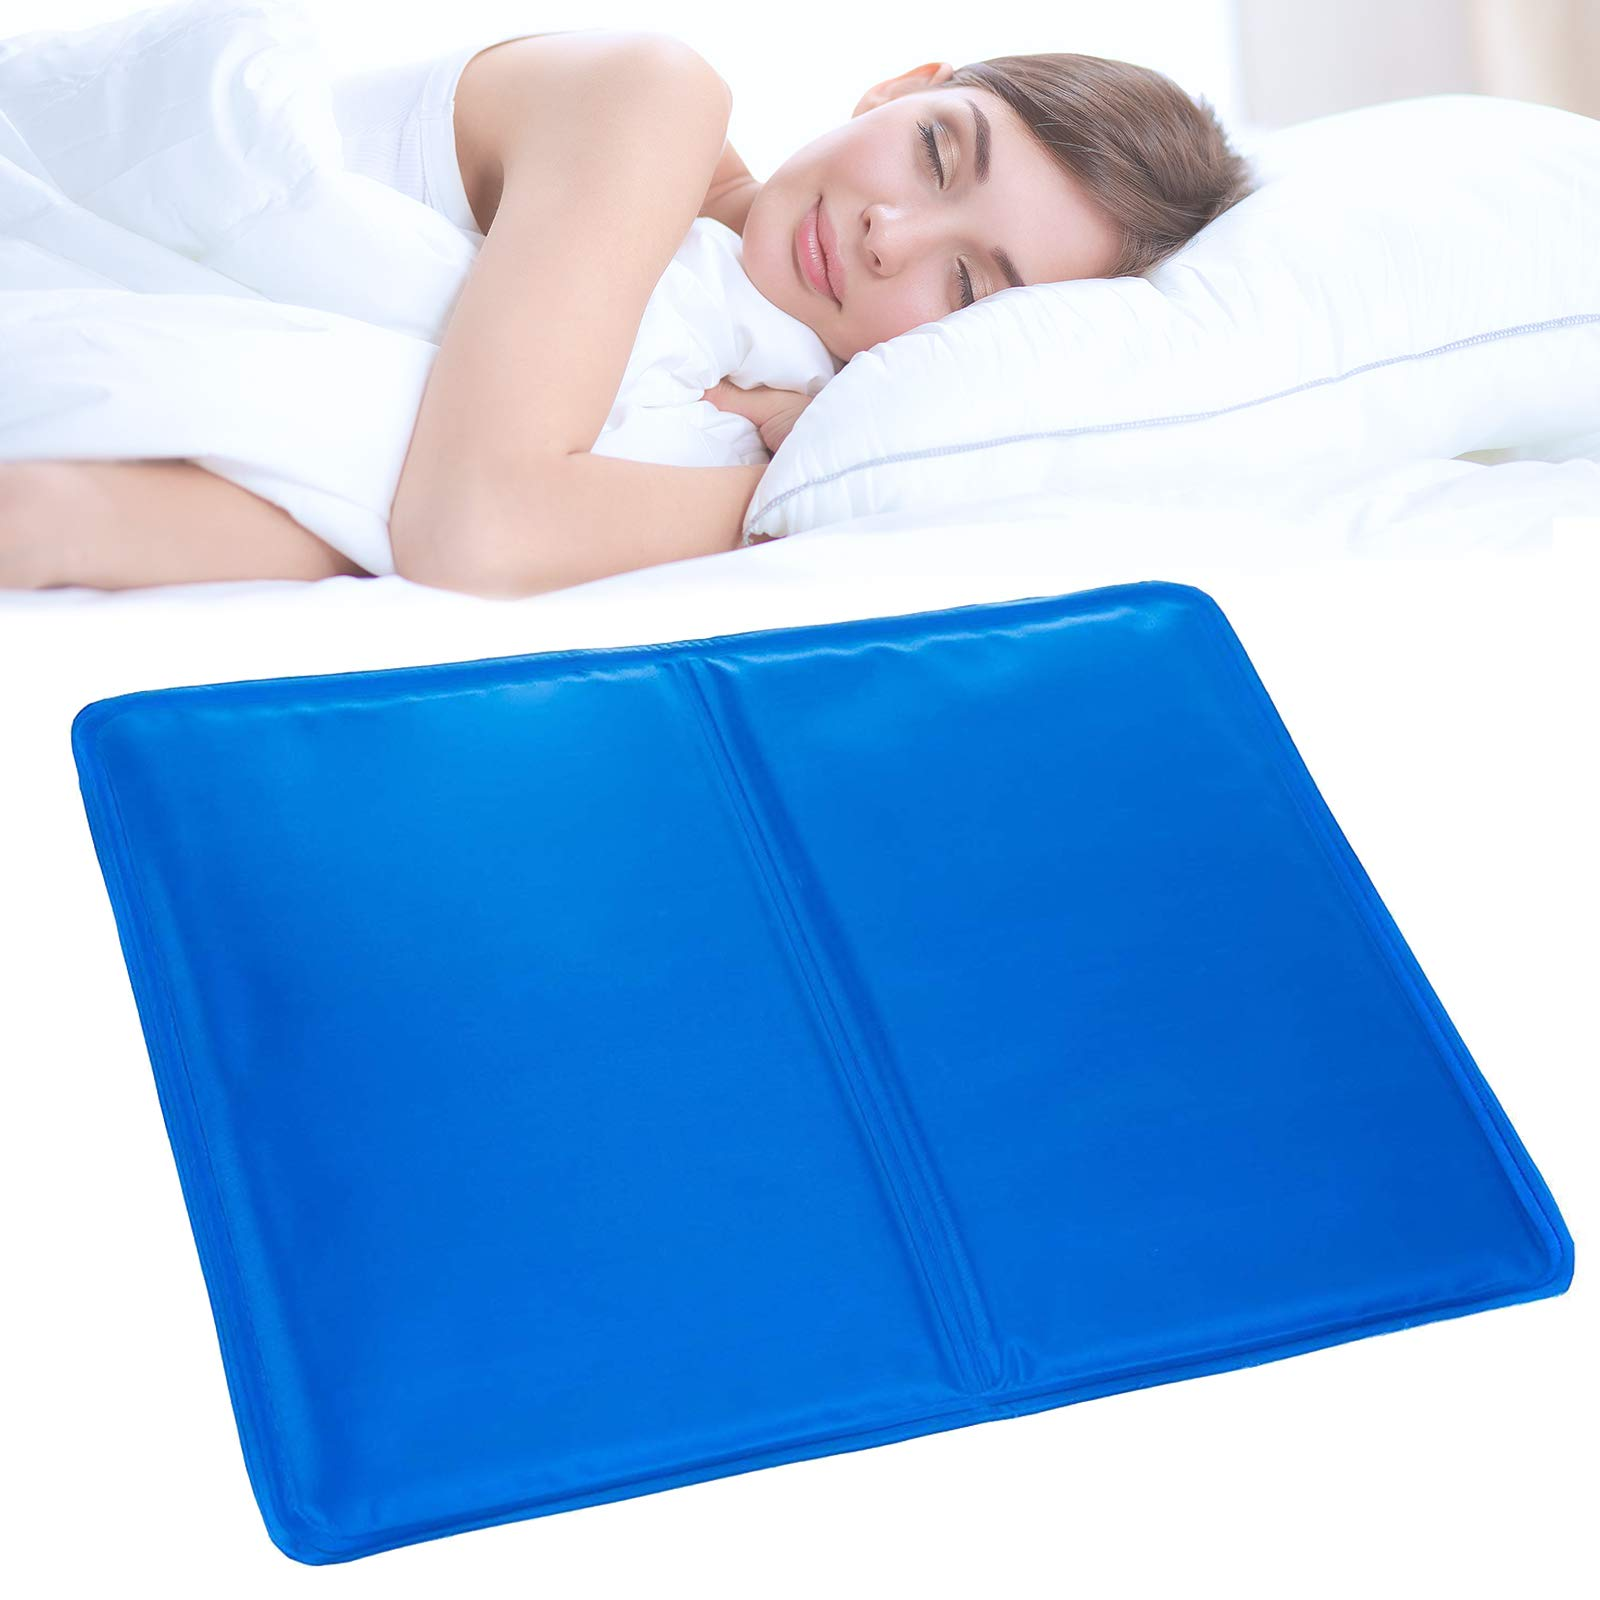 Tanness Magic Multi-Function Cool Jelly Pad Cushion Pillow Mat Absorbs and Dissipates Heat - Helps Improve Quality of Sleep & Optimal Sleeping Temperature